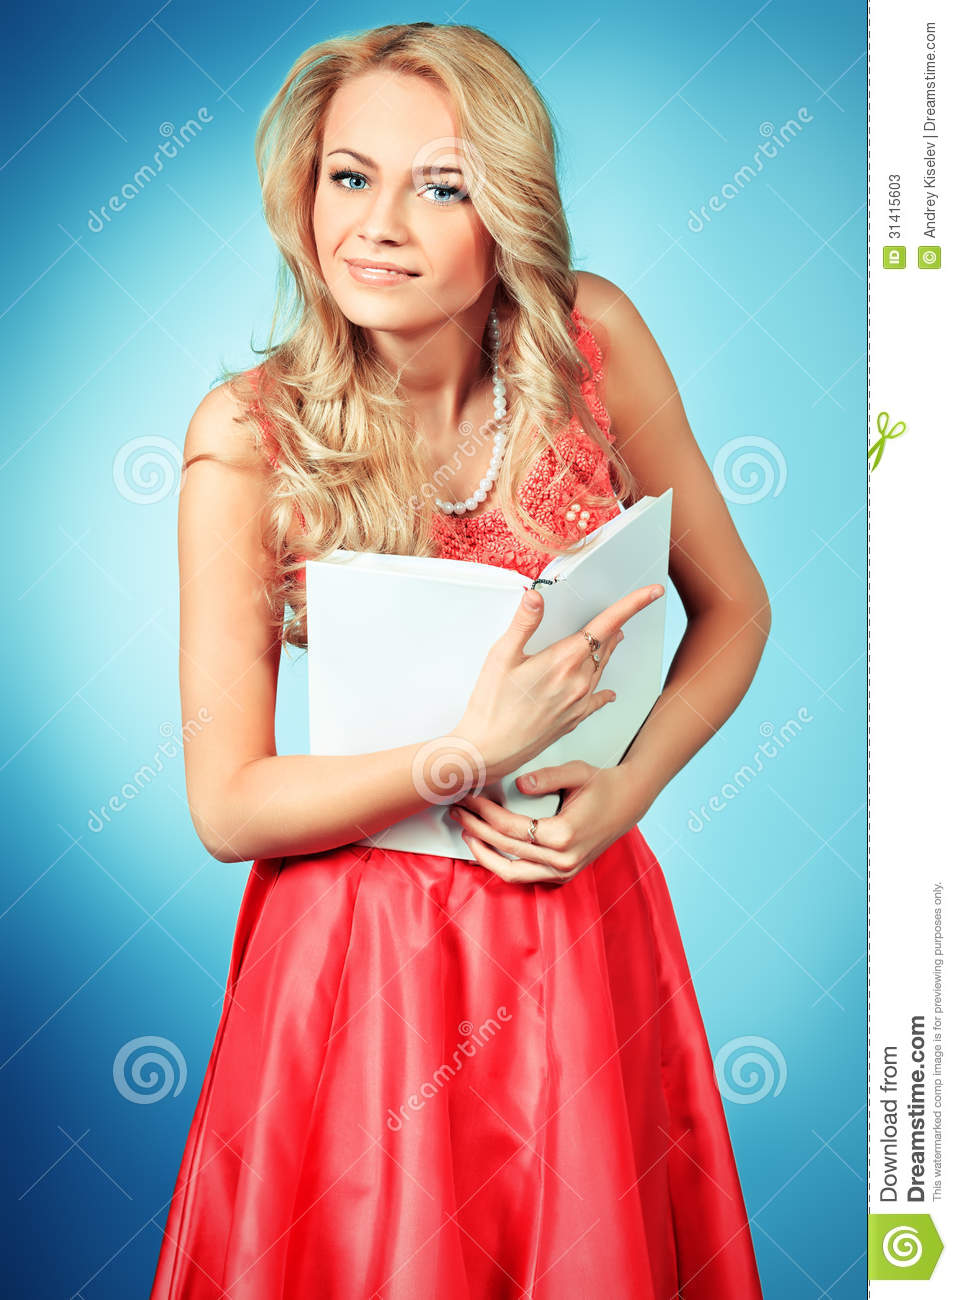 Cutie Girl Stock Photos Image 31415603